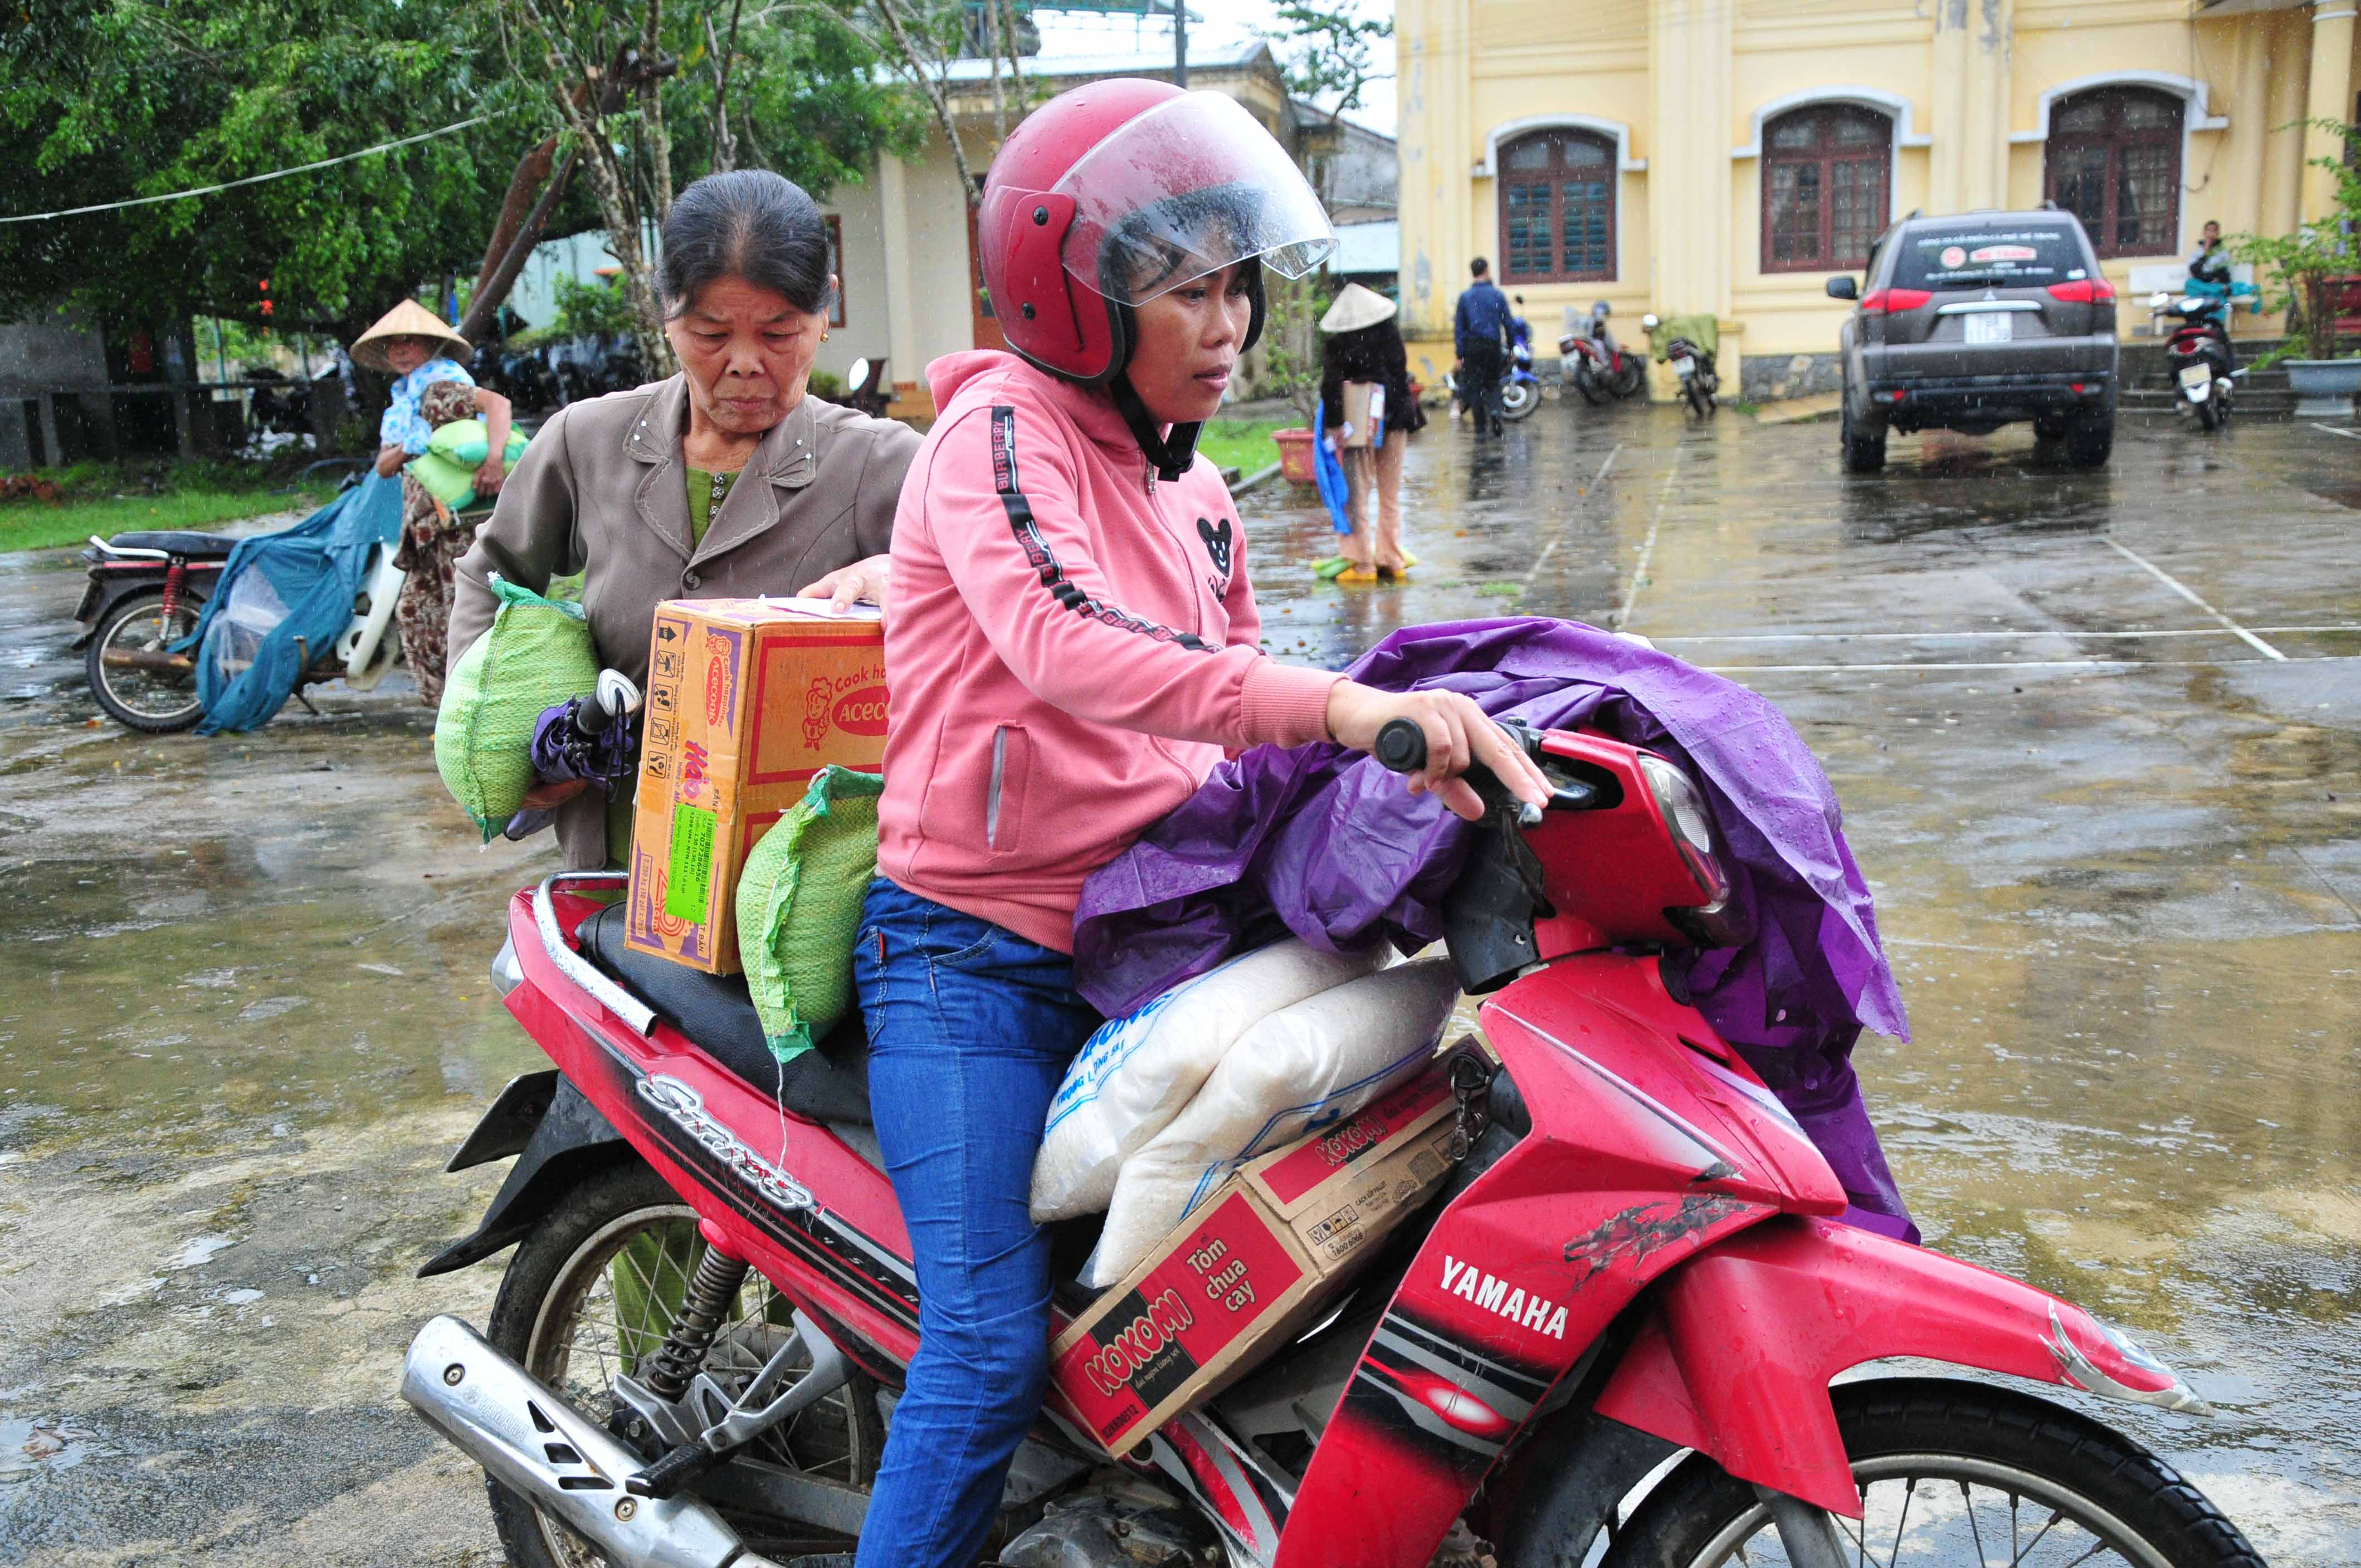 Taking relief goods home